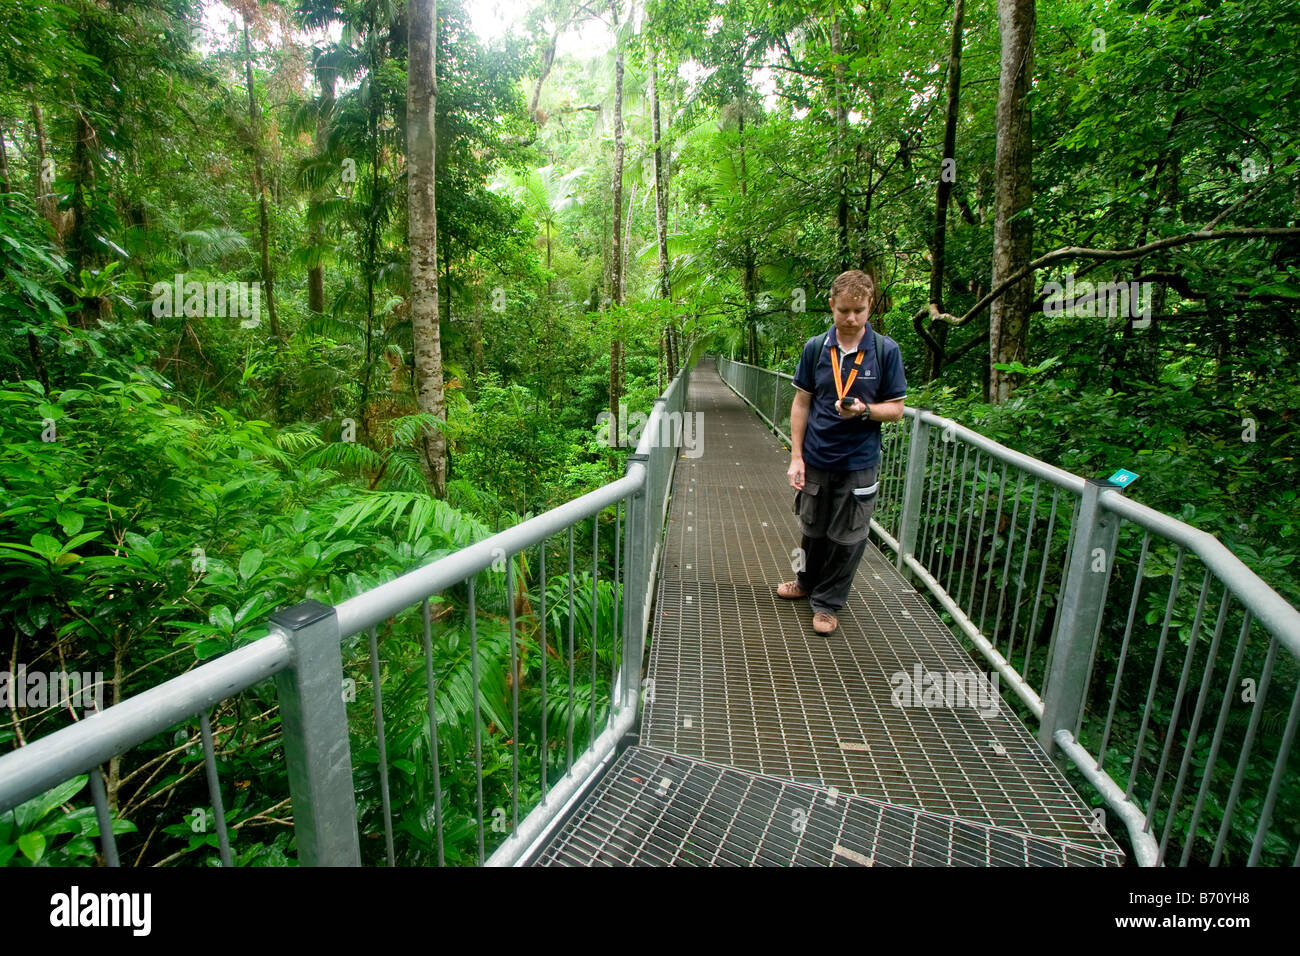 Elevated walkways take visitors through the canopy of the Daintree National Park at the Daintree Discovery Centre & Elevated walkways take visitors through the canopy of the Daintree ...